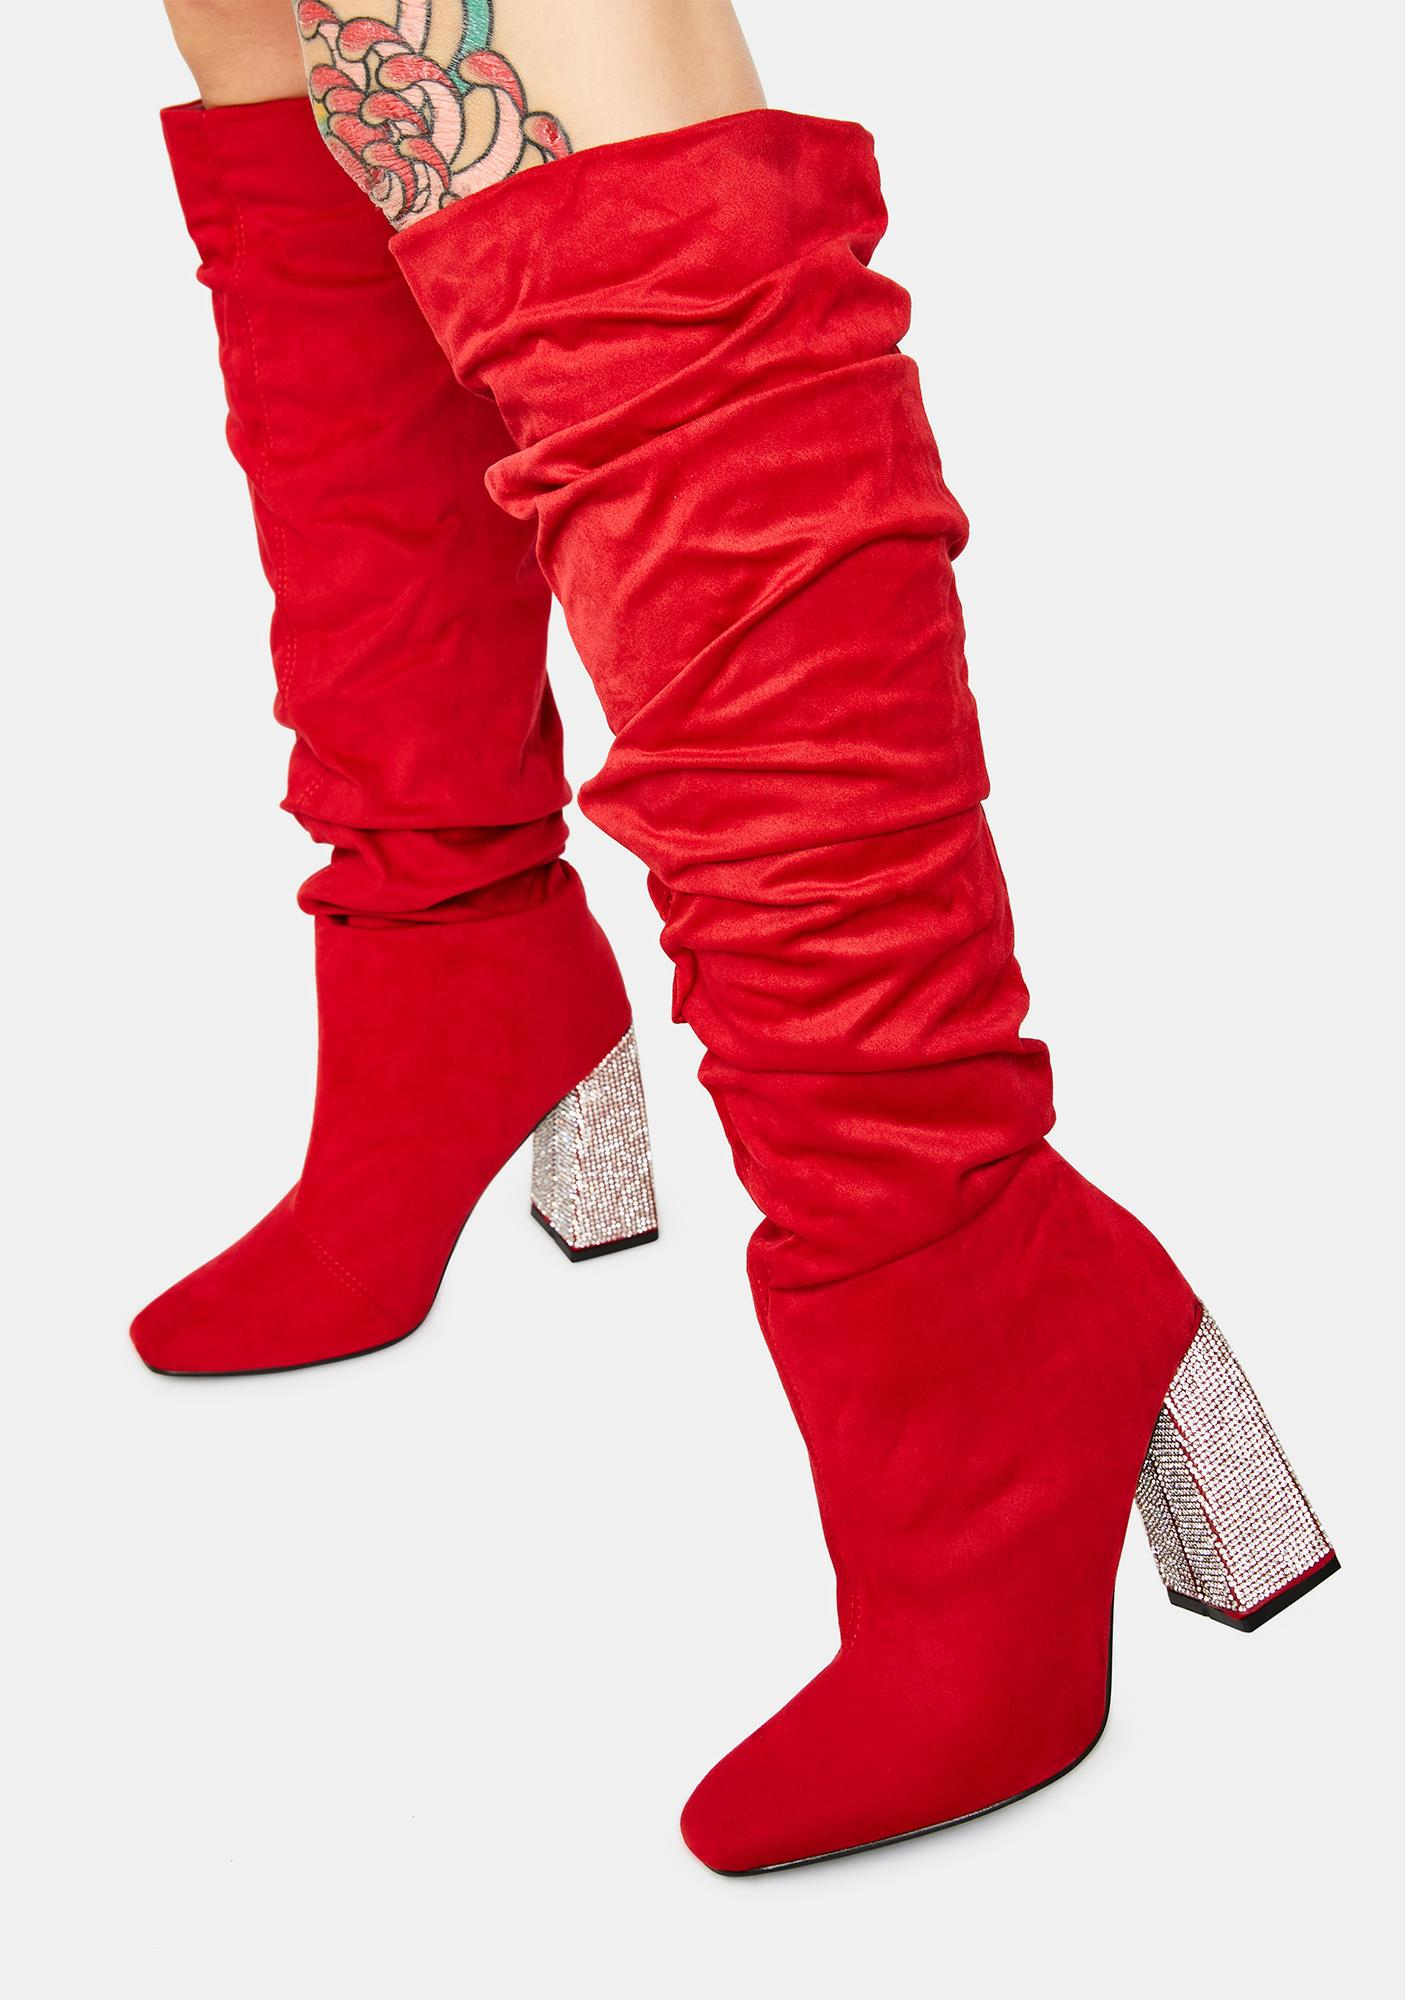 Scarlet Closer To The Picture Knee High Boots